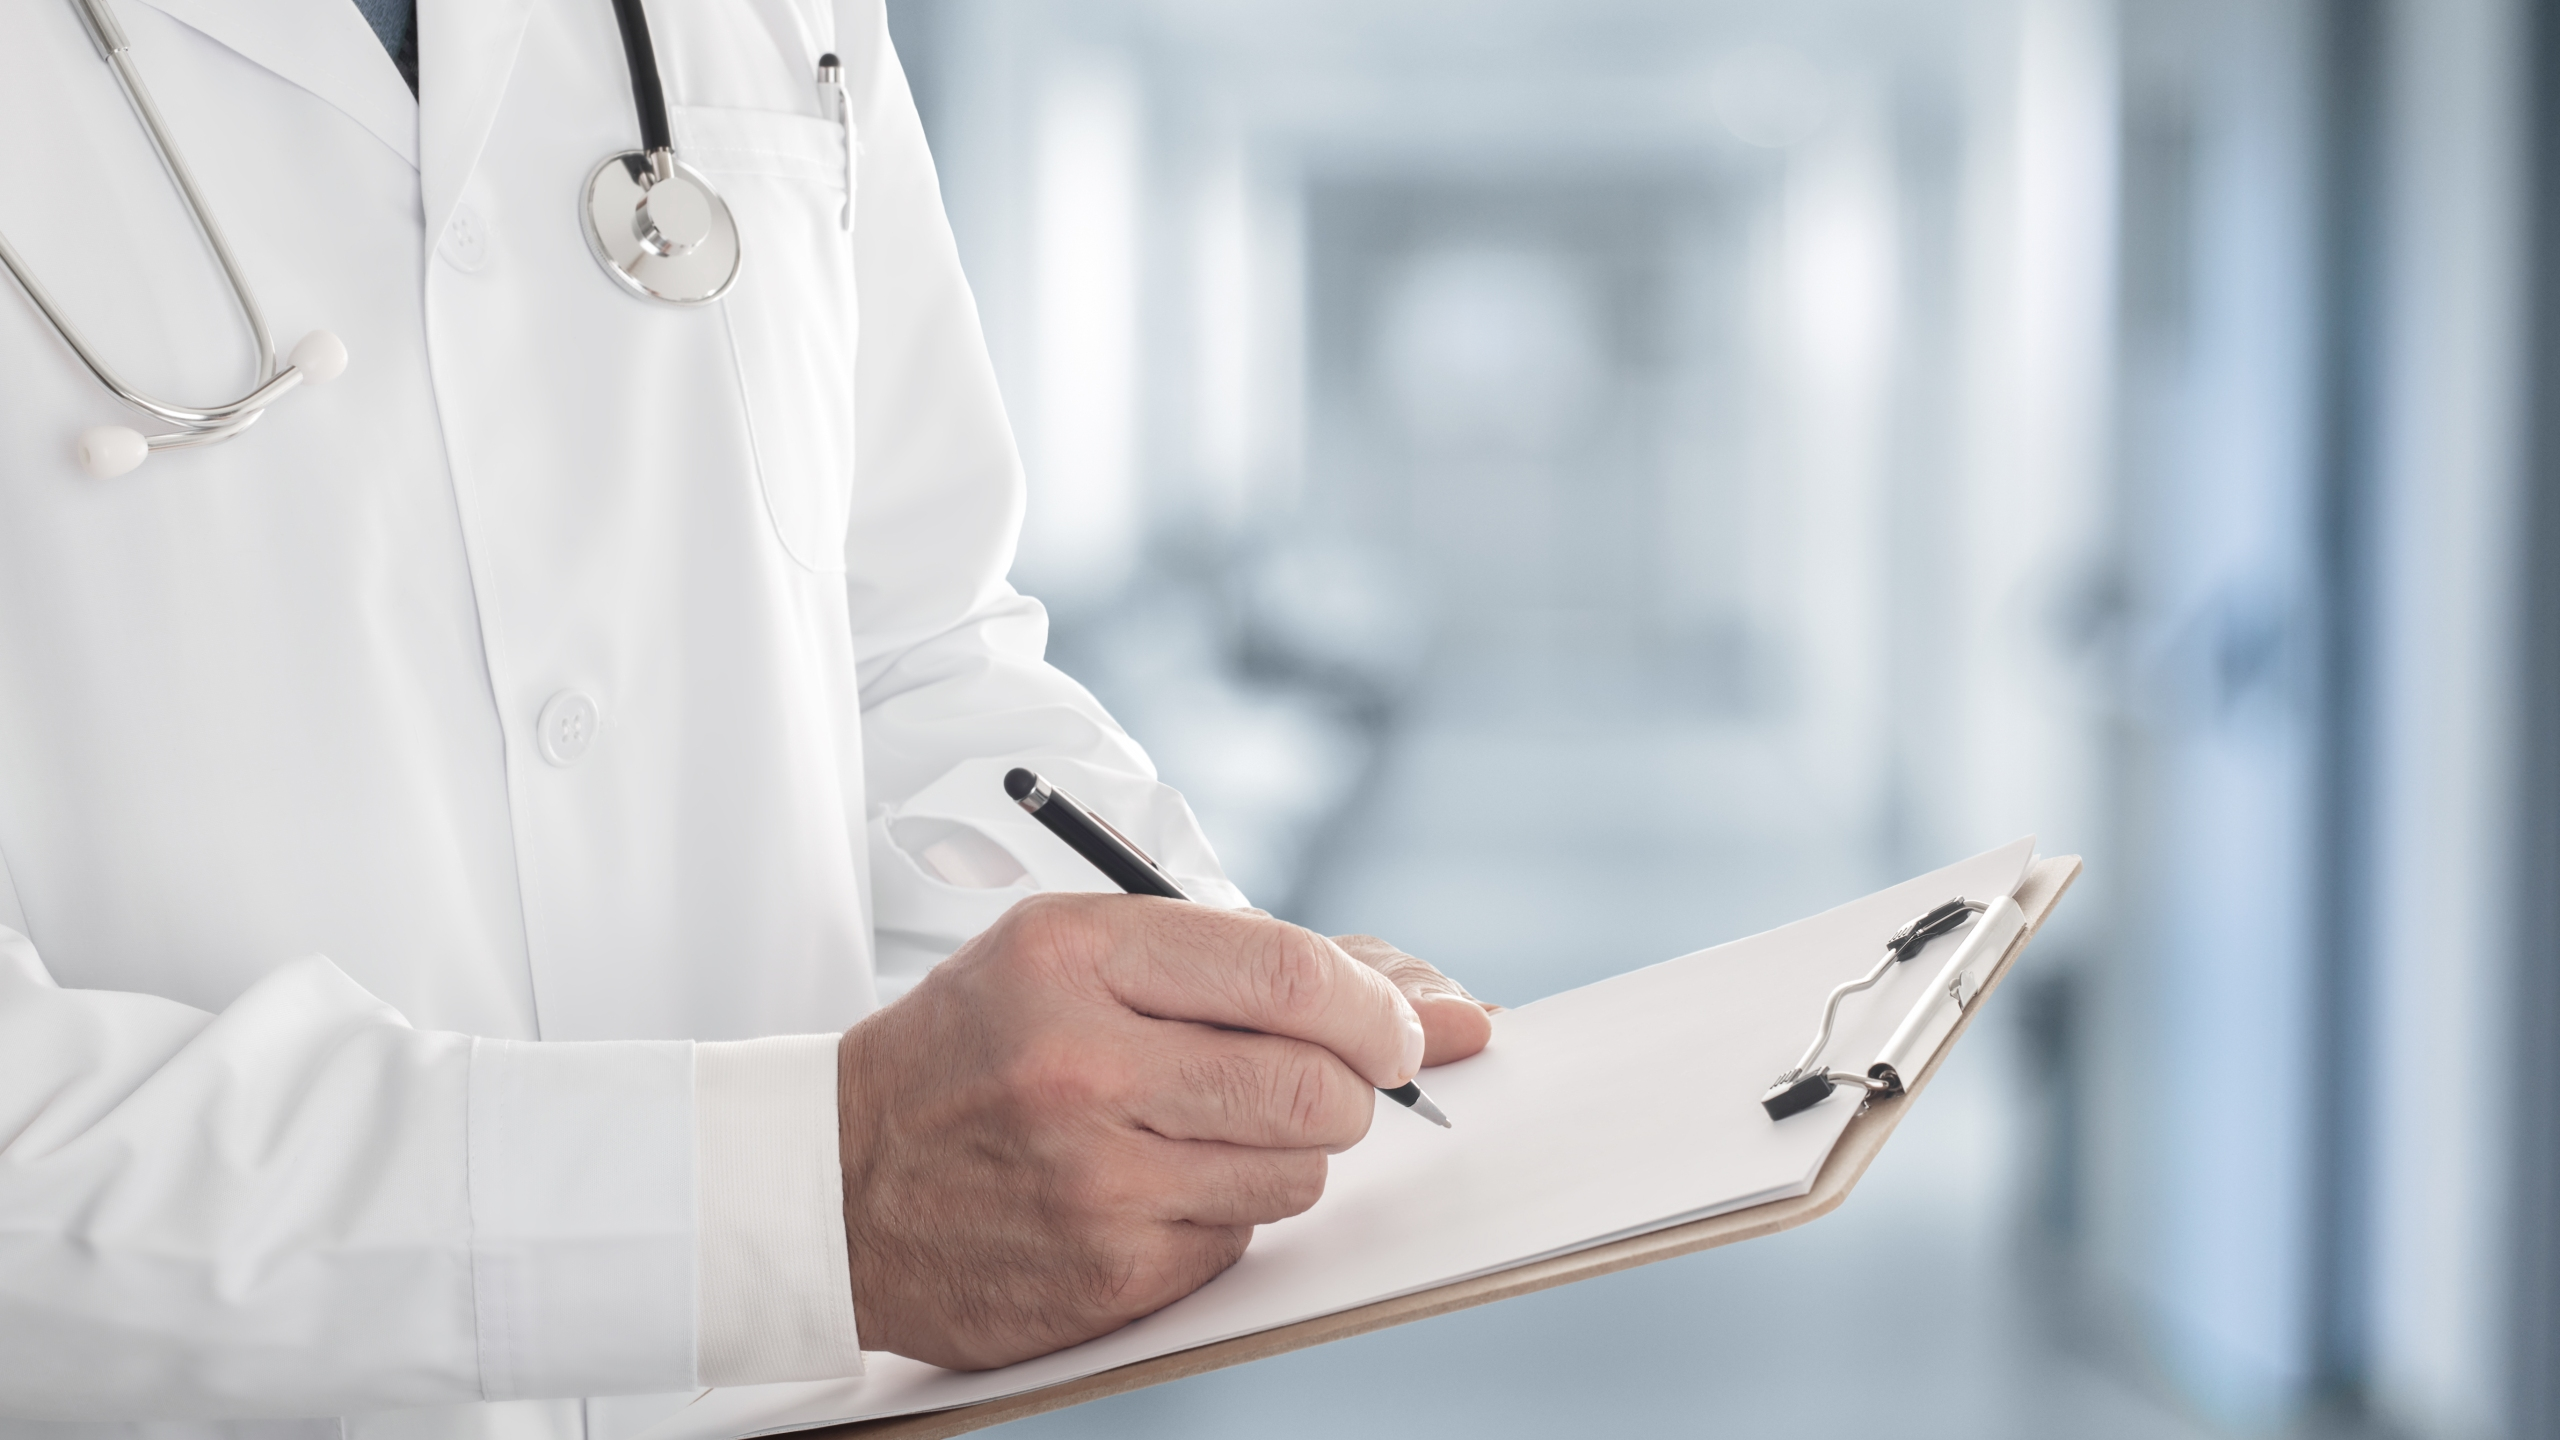 FILE photo of male doctor in white coat writing on a clipboard